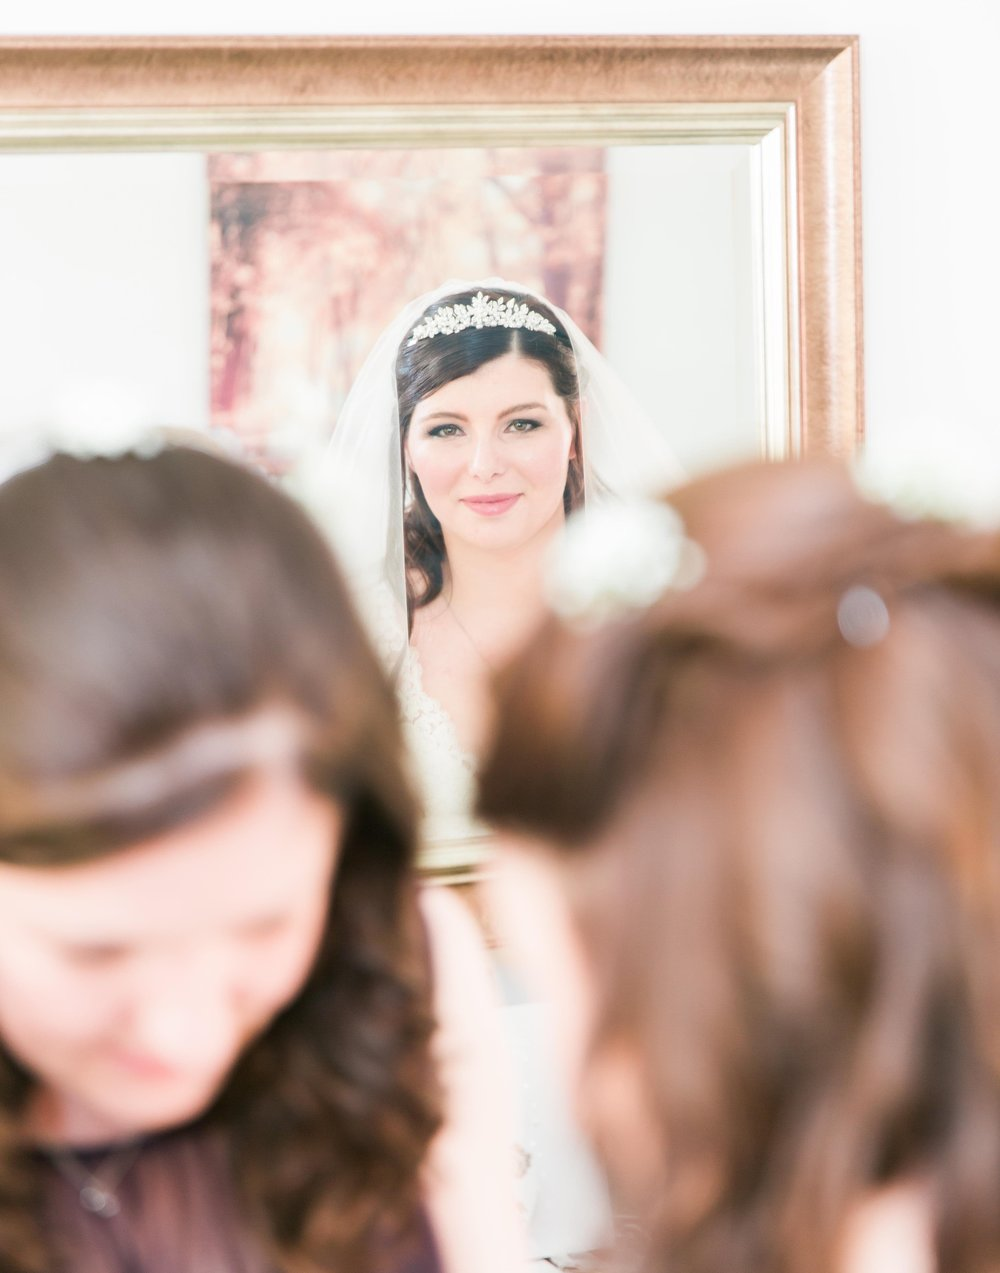 Oxfordshire wedding photographer based in bicester but covering banbury, the cotswolds